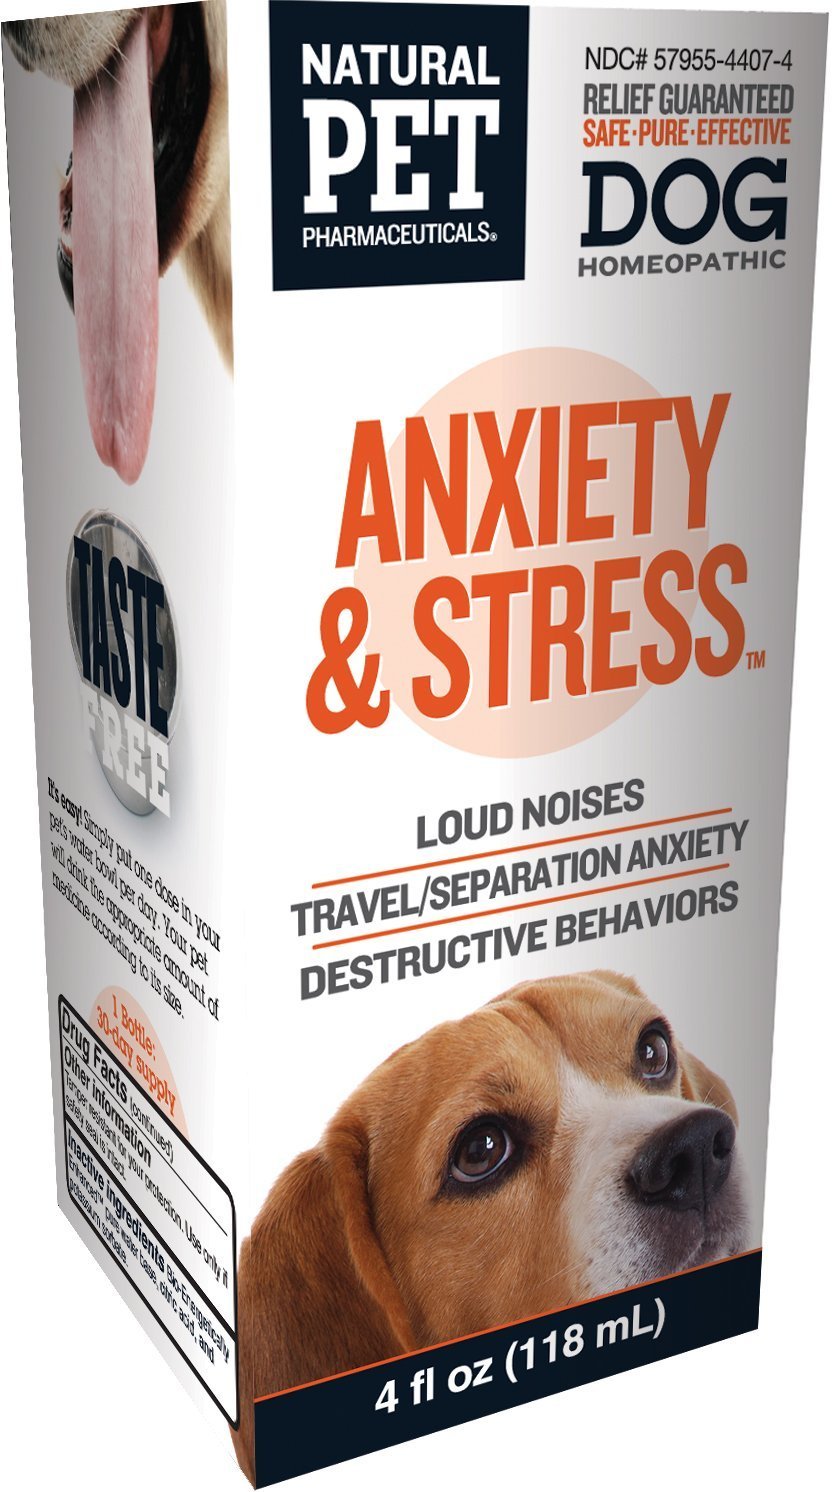 Natural Pet Pharmaceuticals by King Bio Anxiety and Stress Control for Dog